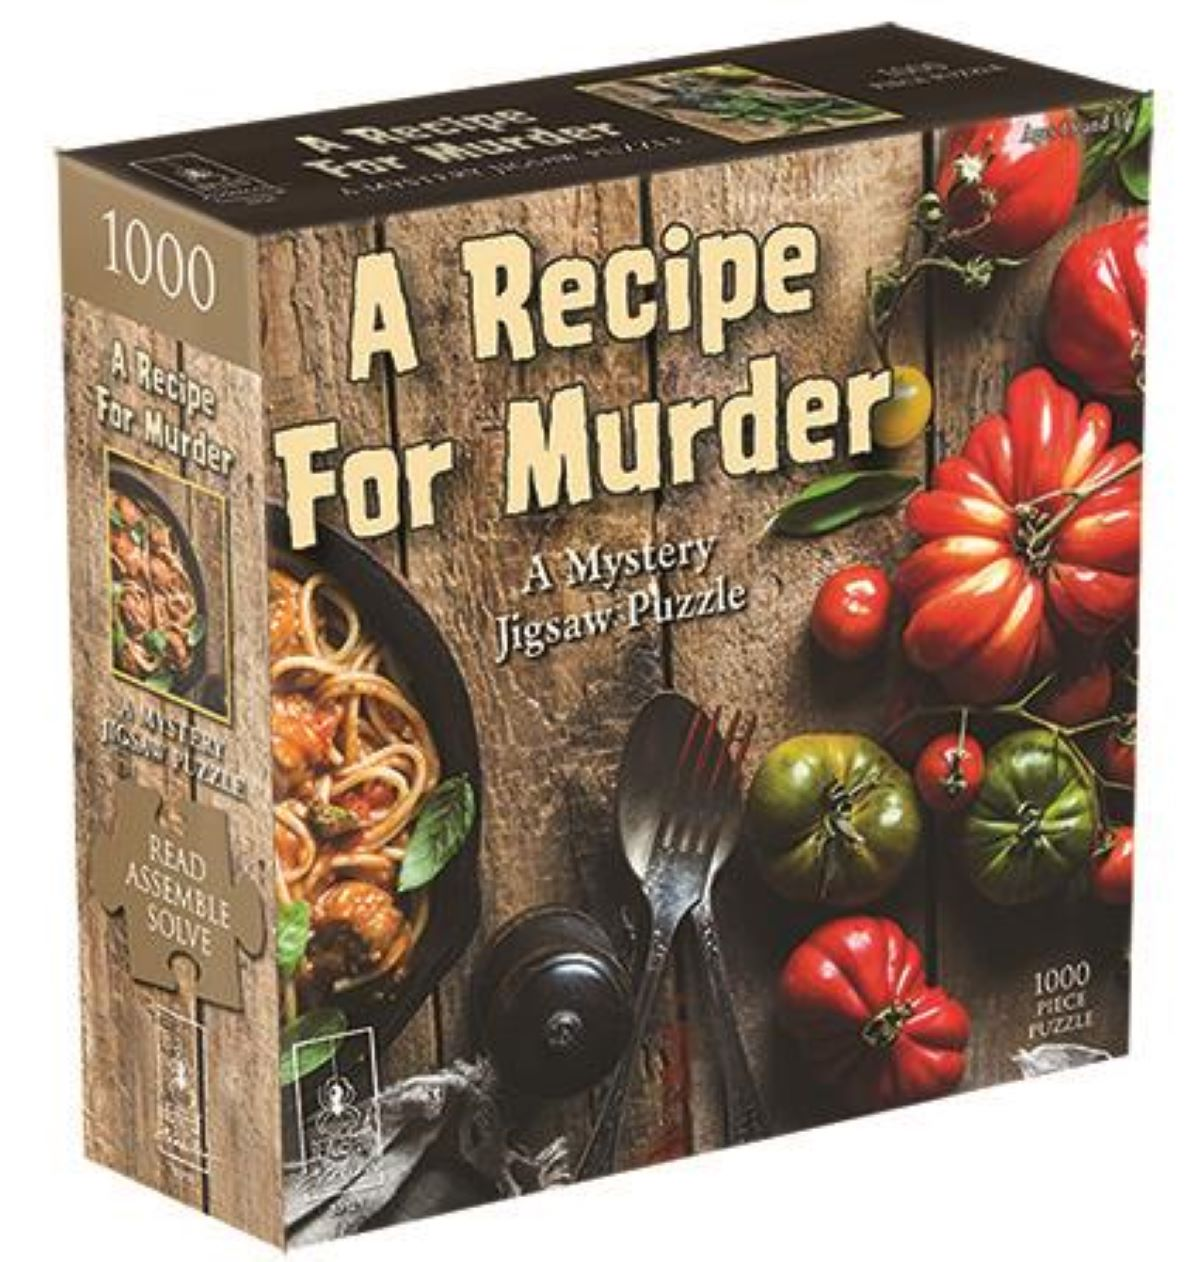 A Recipe for Murder - A Mystery Jigsaw Puzzle